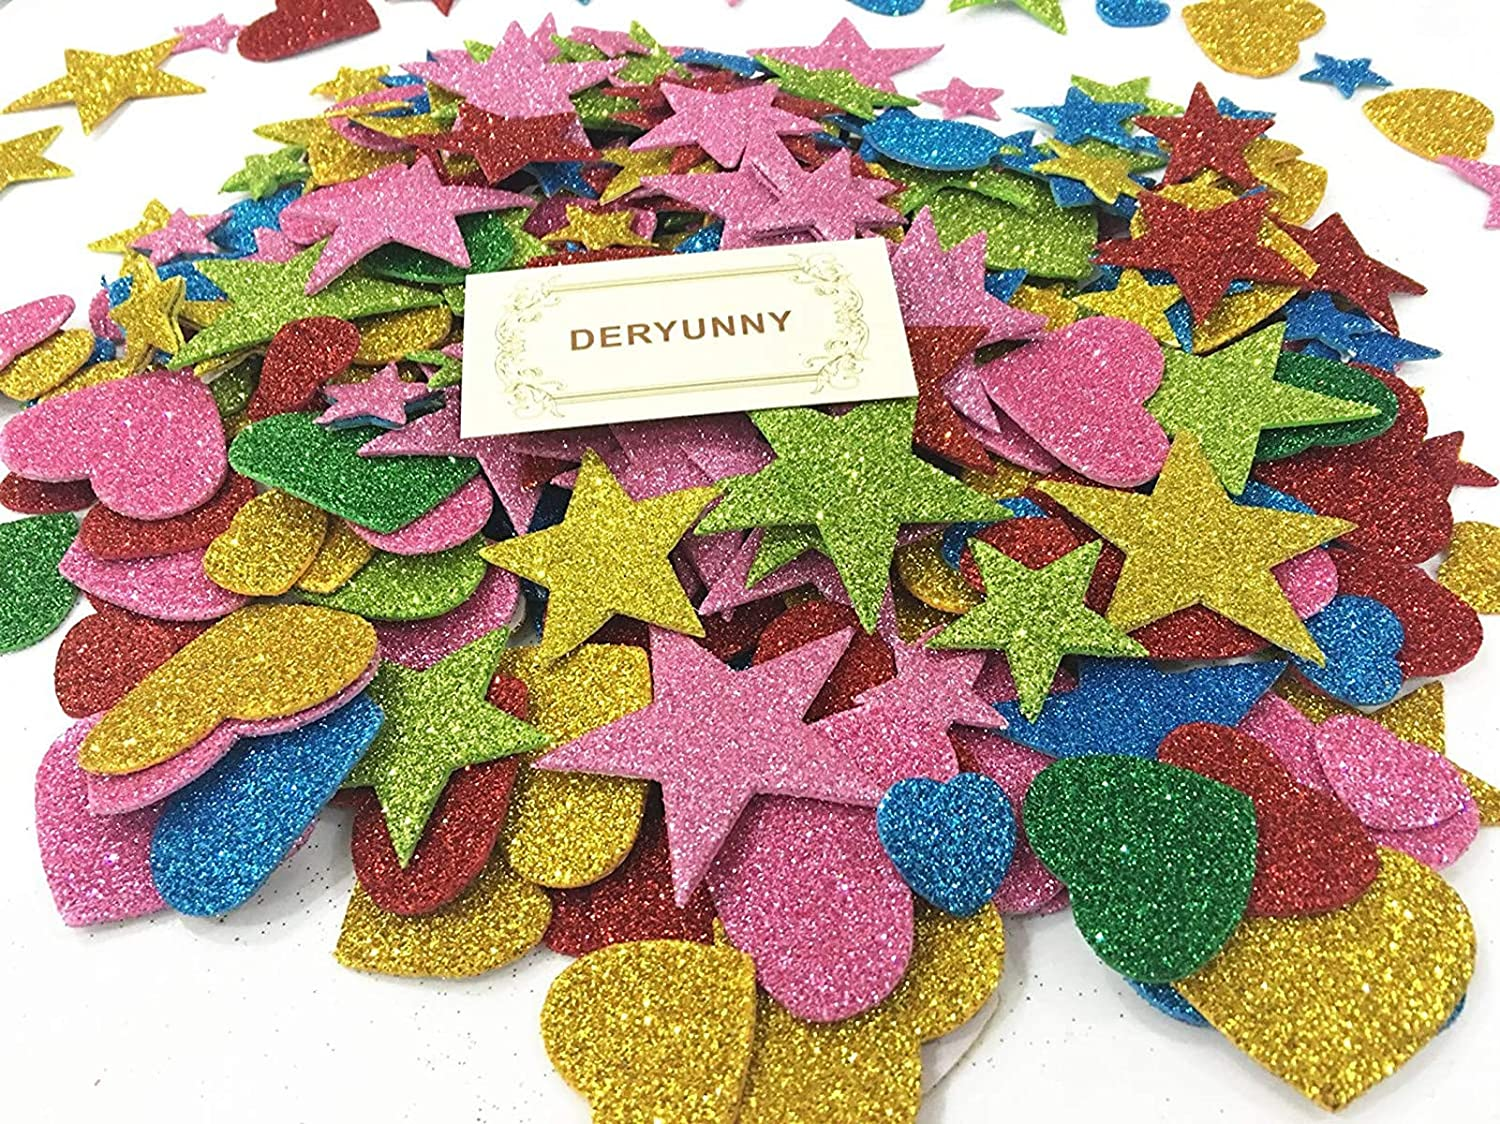 Foam Glitter Stickers Self Adhesive 150 Pieces Mini Heart and Stars Shapes for Kids Arts Craft Supplies Greeting Cards Home Decoration